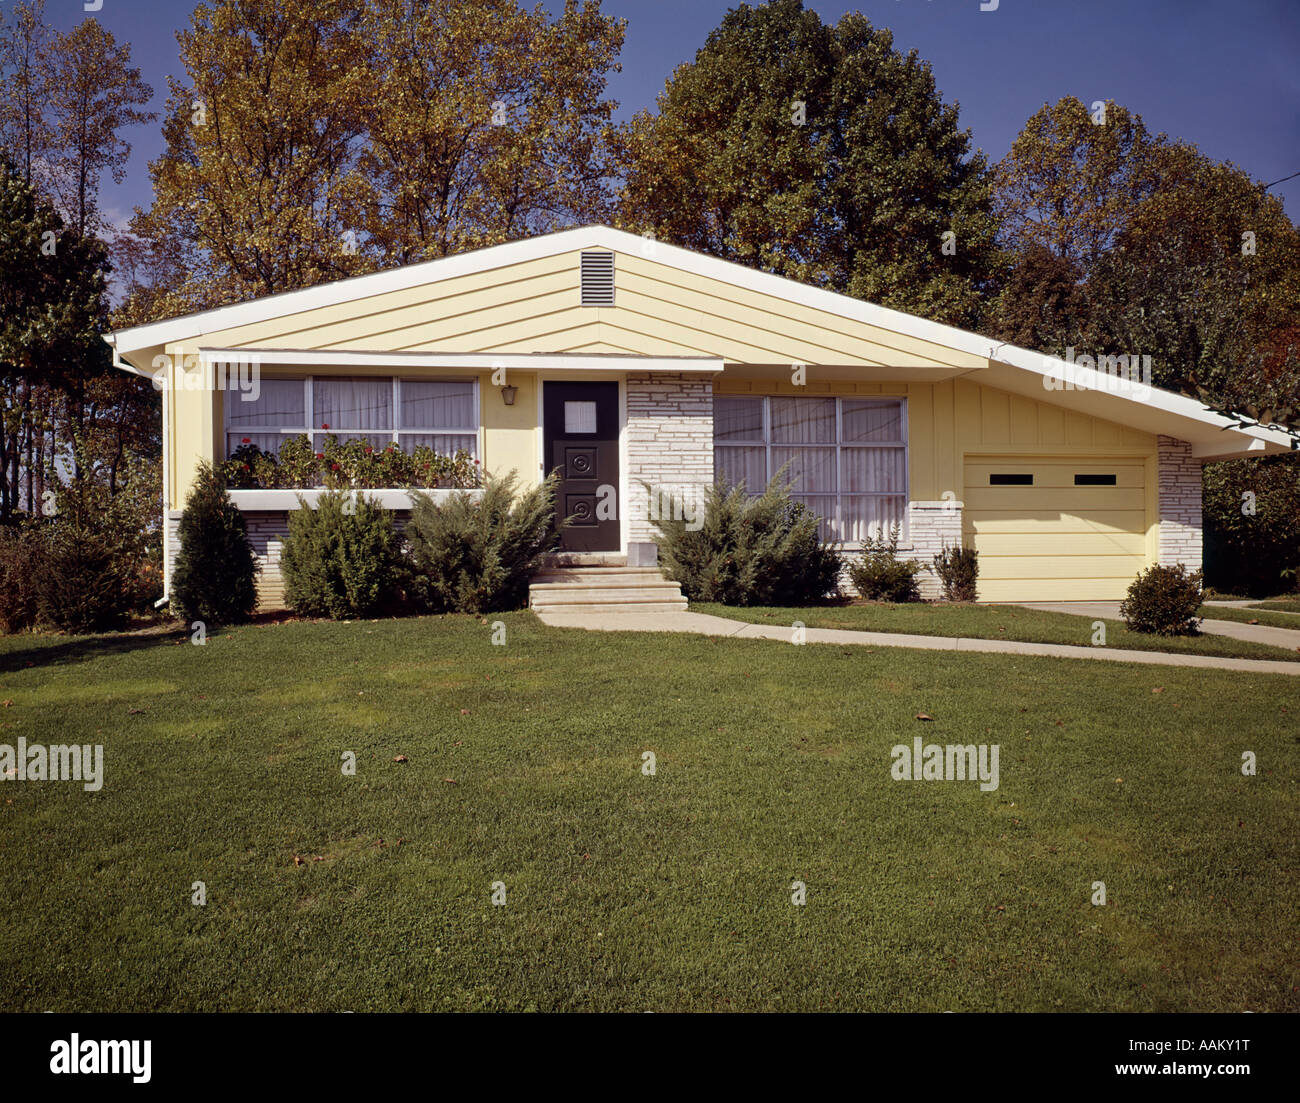 1960s HOUSE LAWN YARD - Stock Image